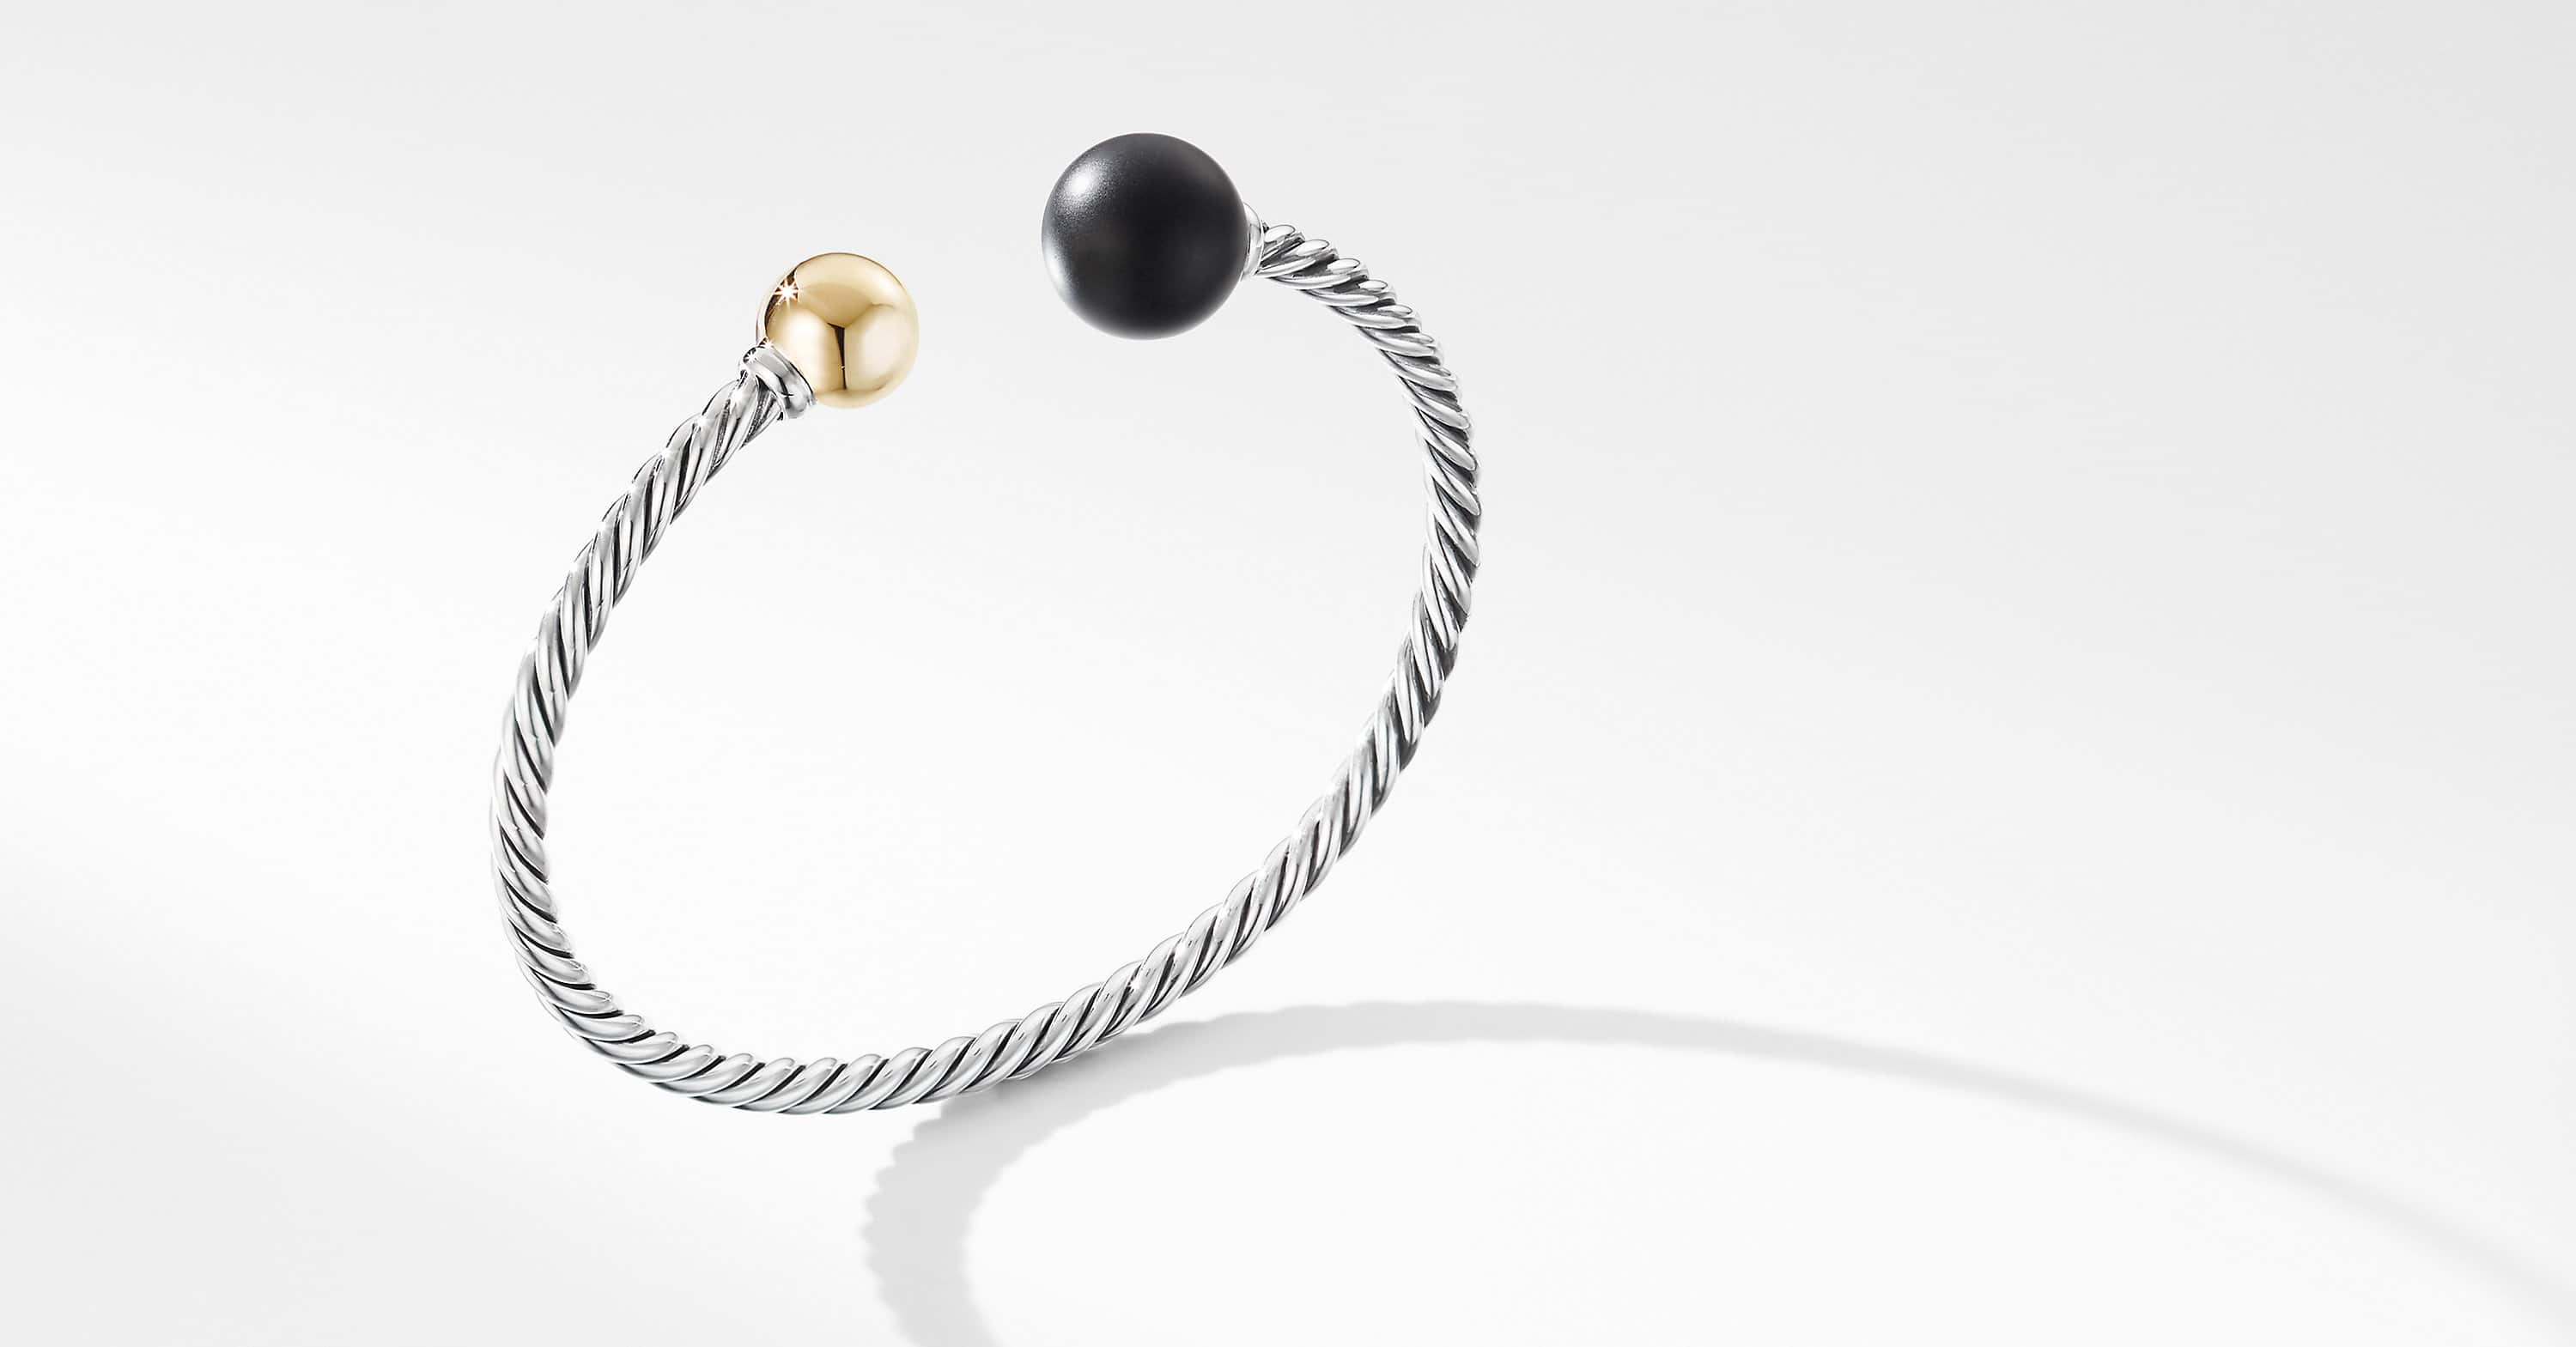 Solari XL Cable Bracelet with 14K Yellow Gold, 3.5mm